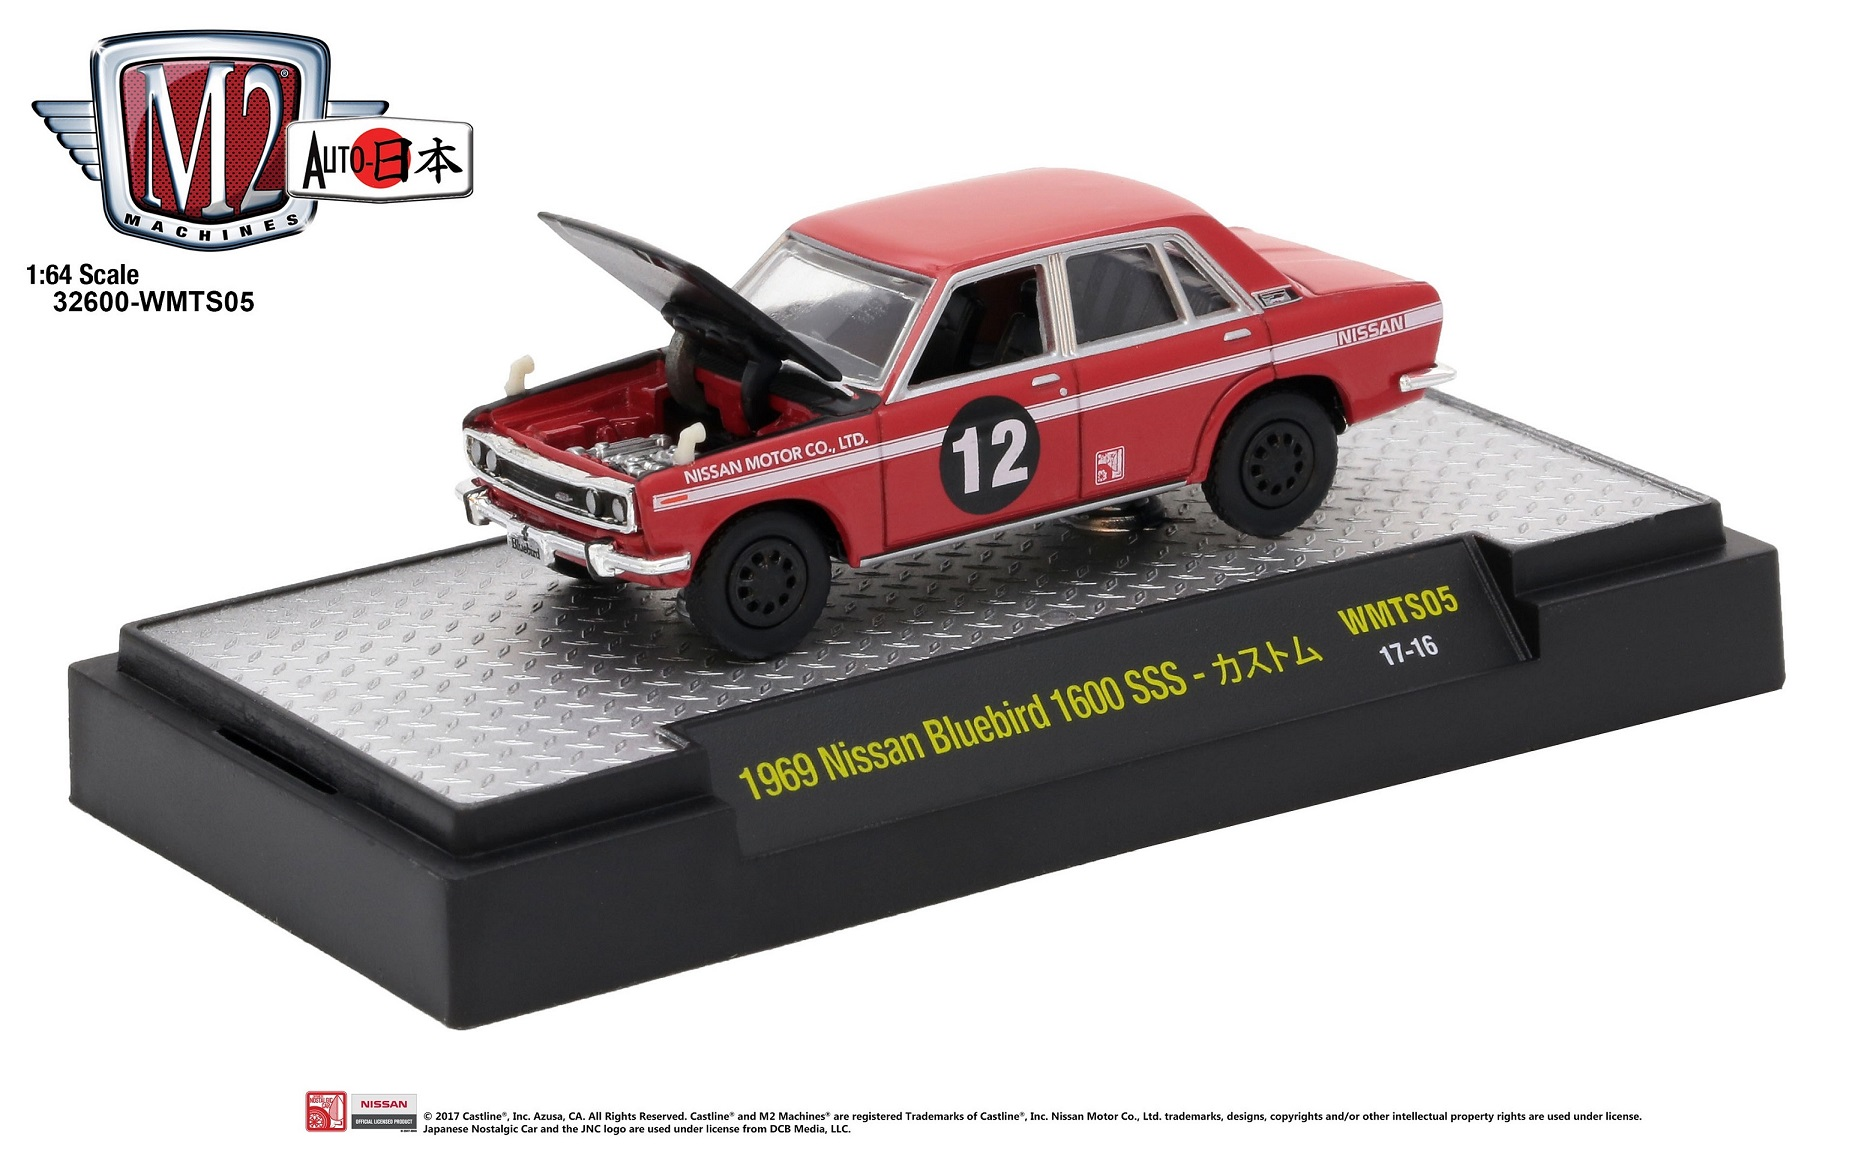 MINICARS: M2's first Auto Japan release revealed ...